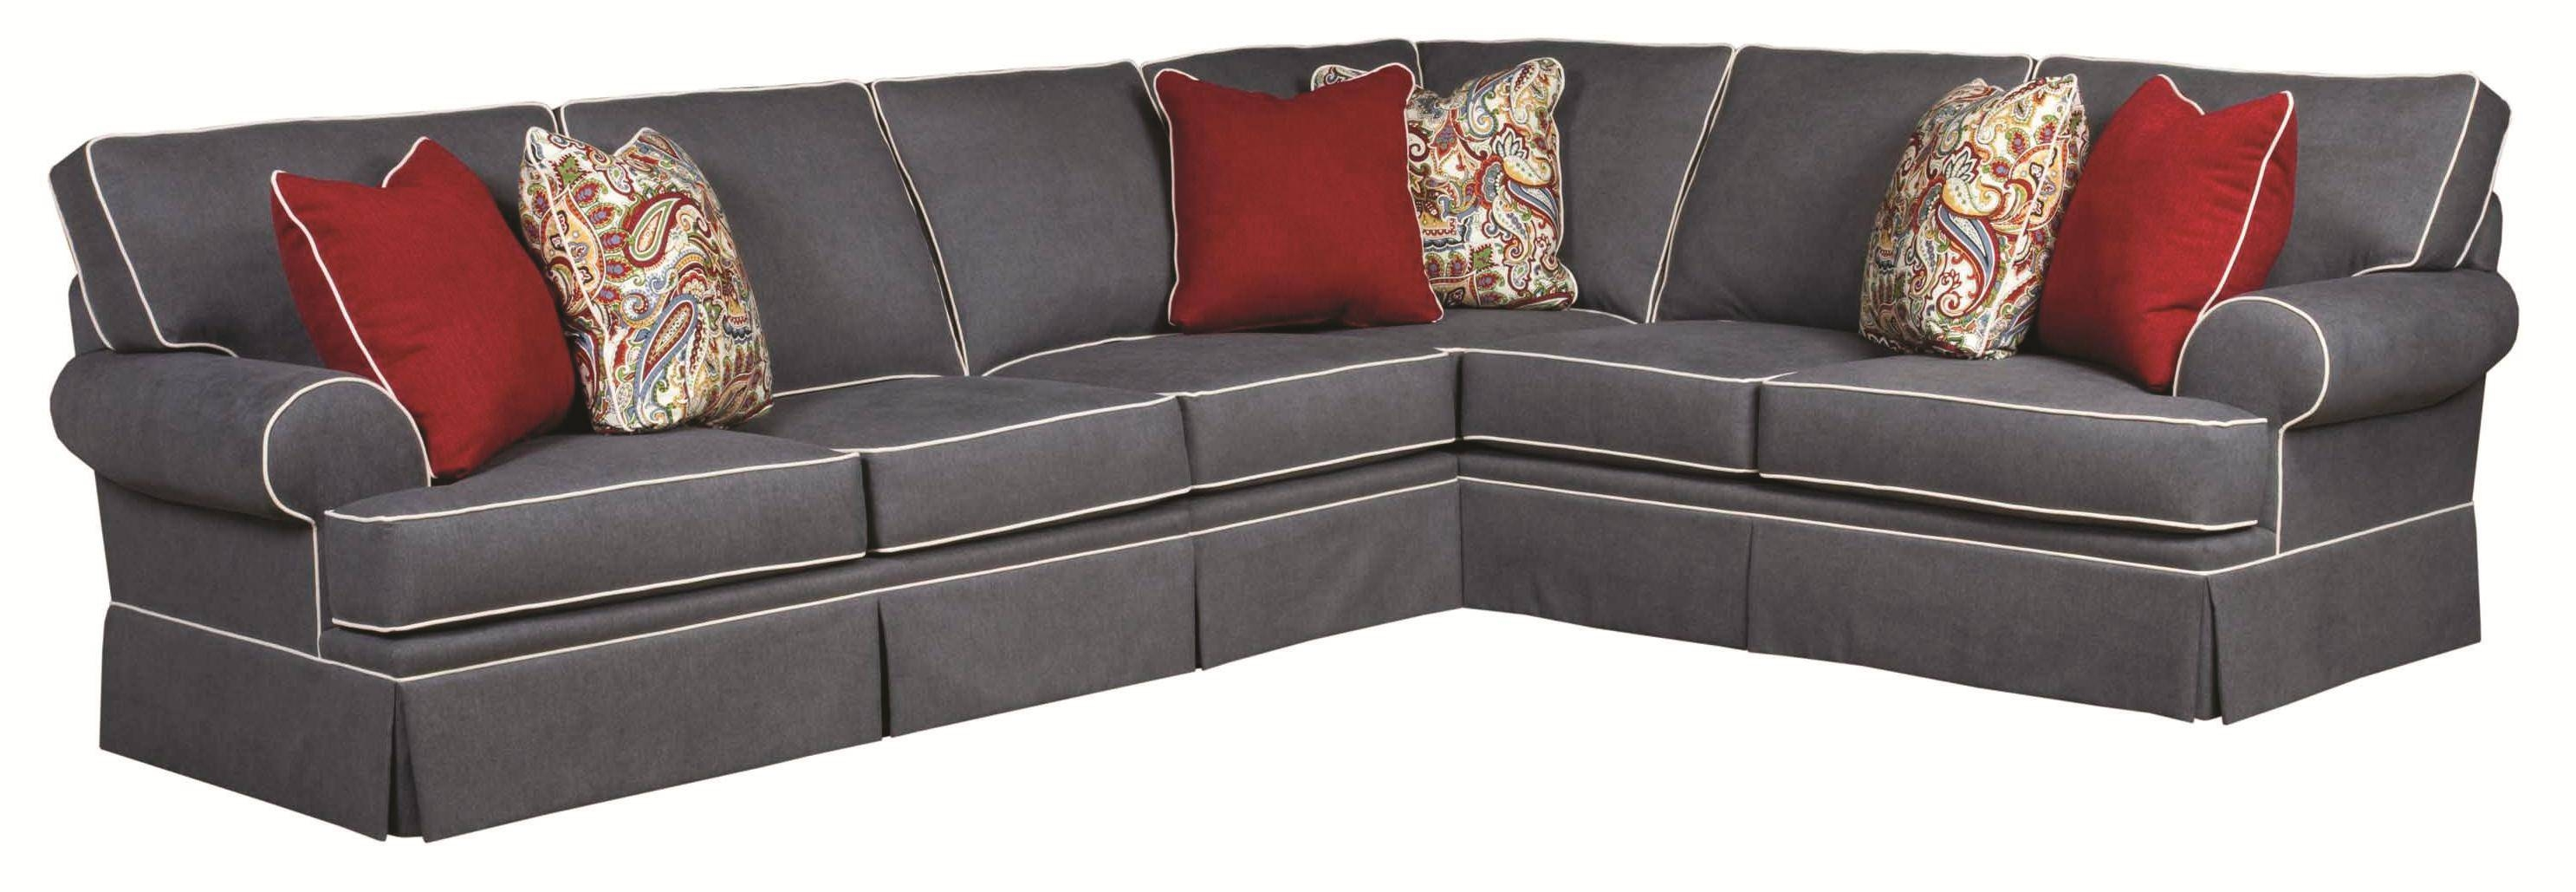 2019 Best Of Broyhill Reclining Sofas